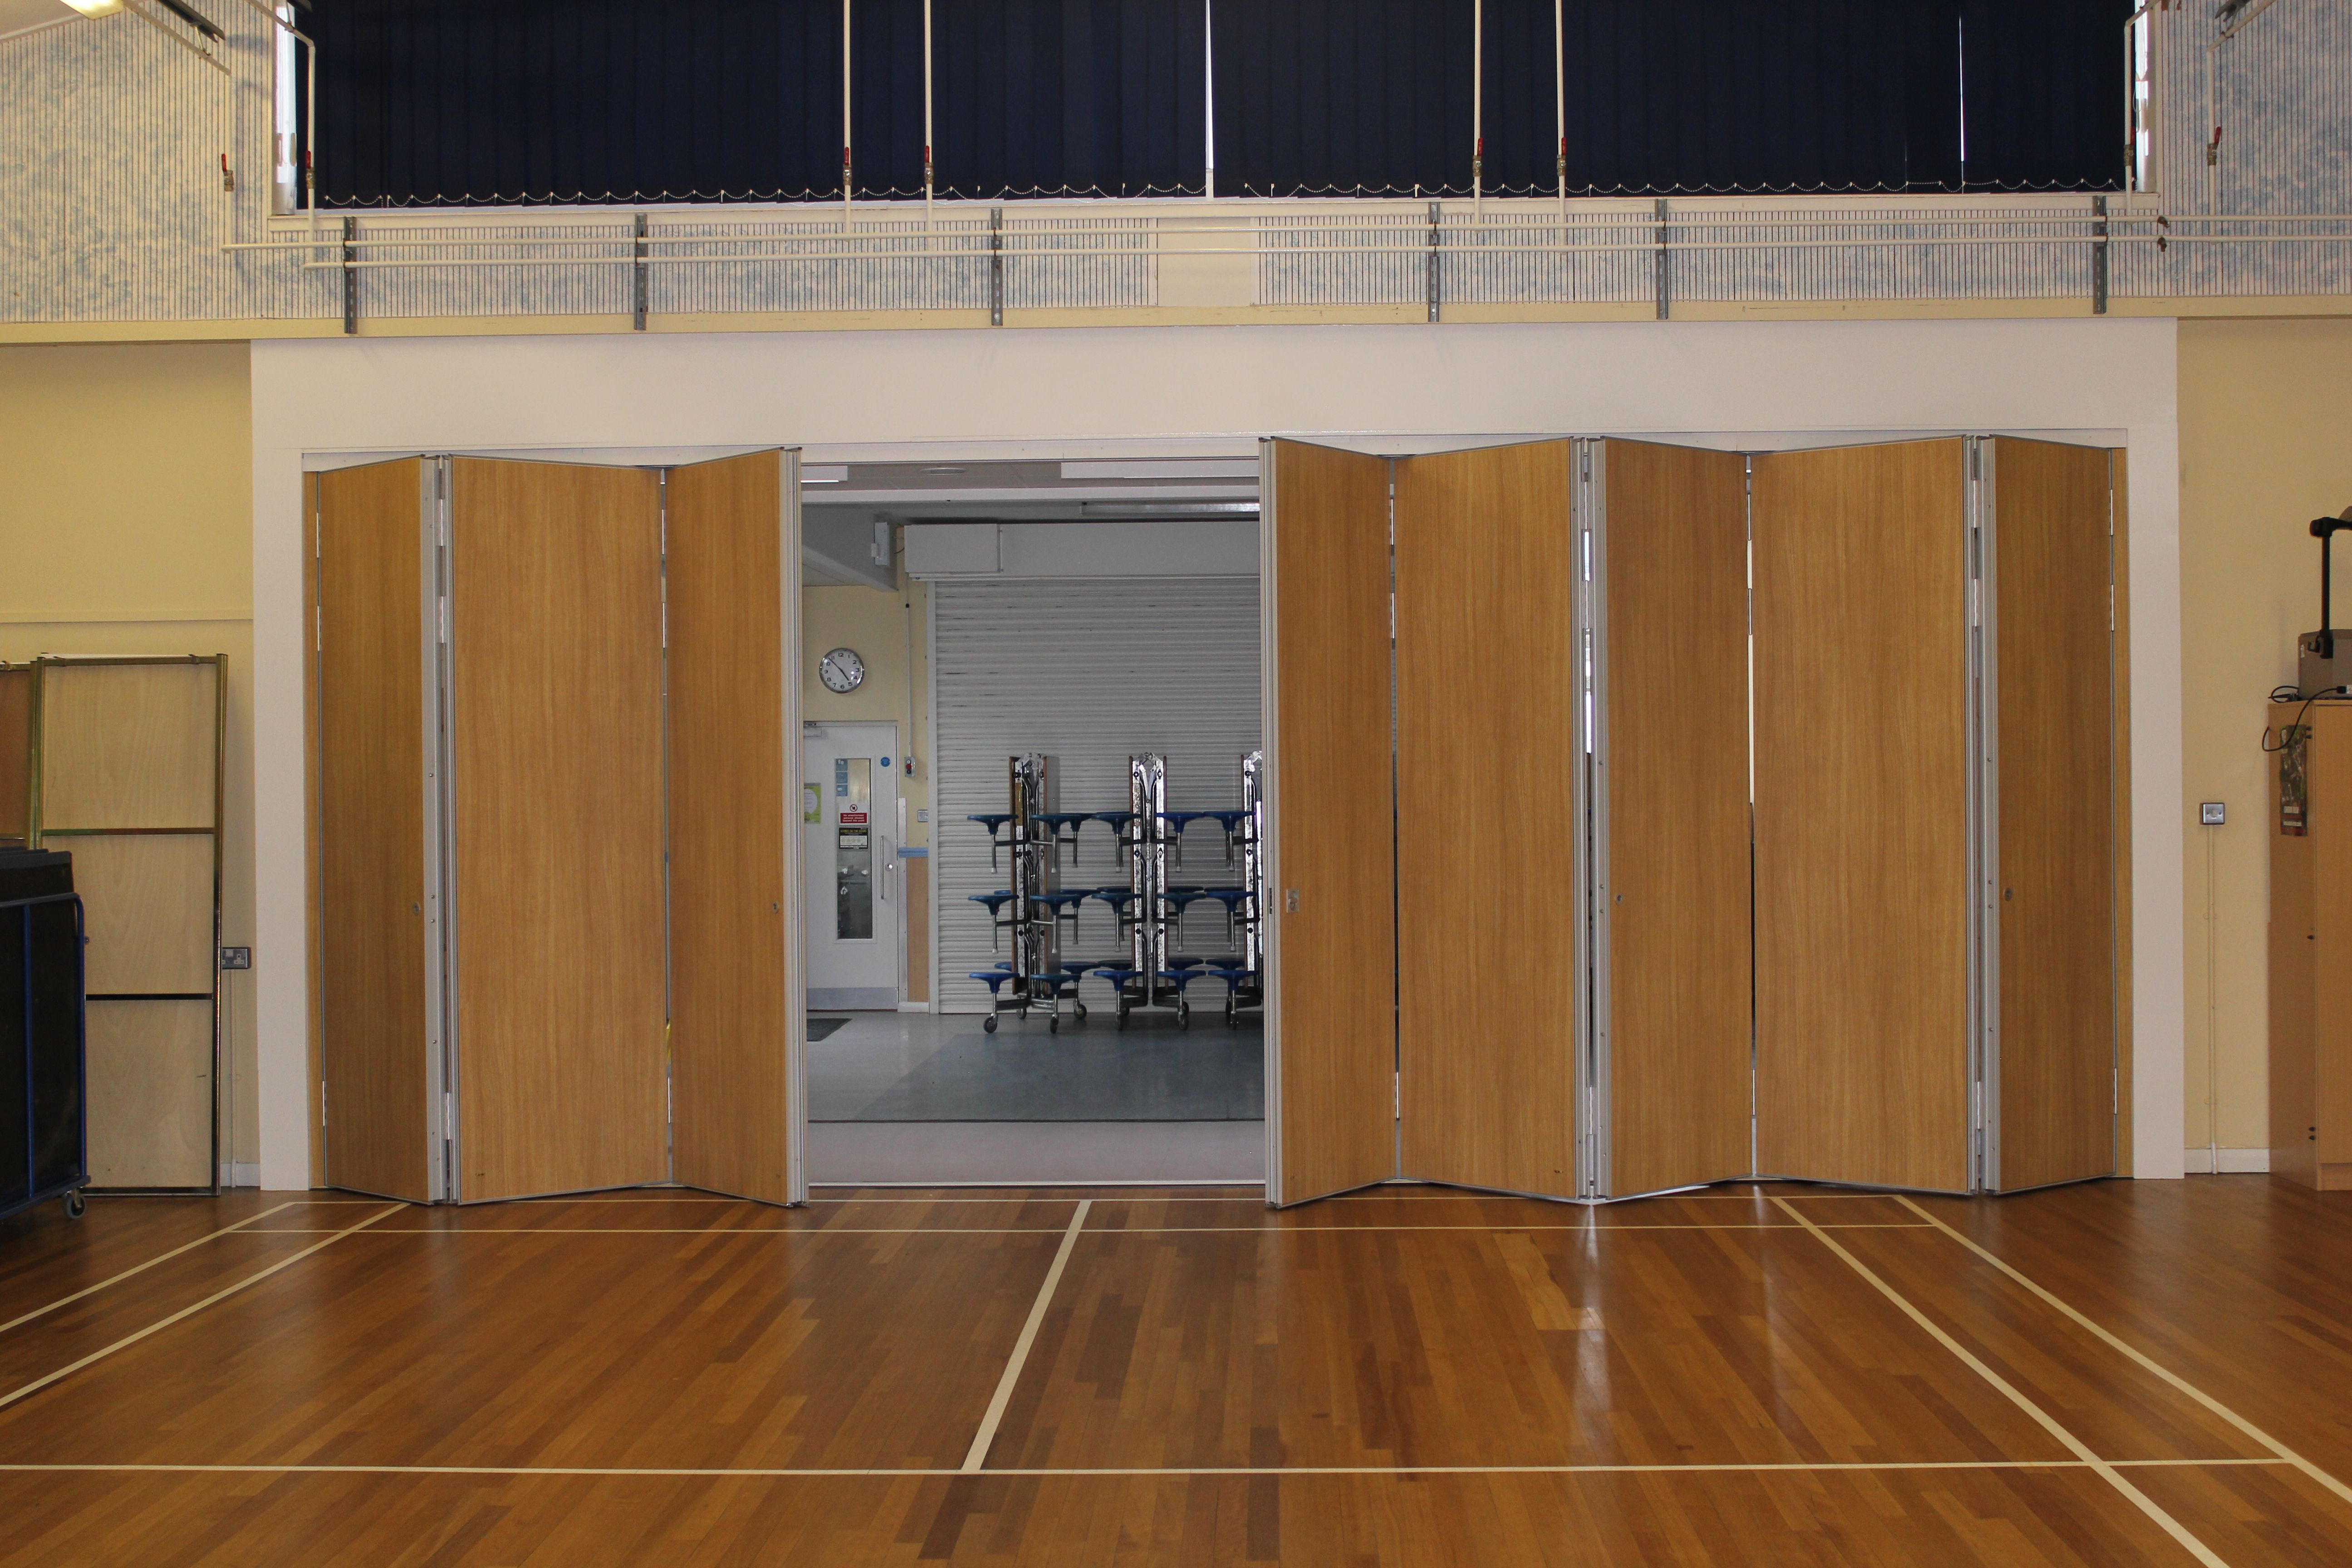 Movable Wooden Partition Room Dividers Allow You To Use Your Existing Space To The